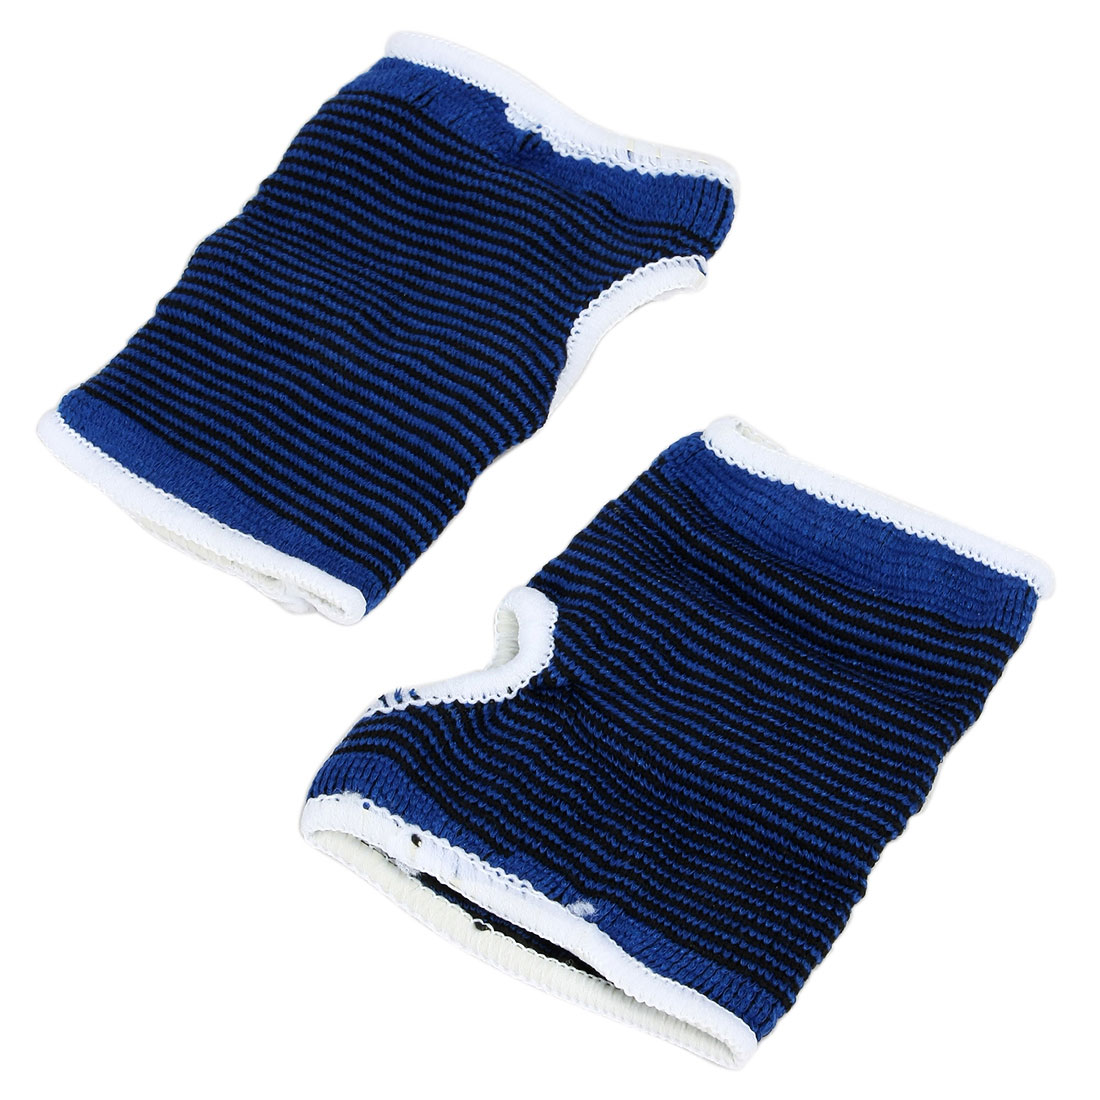 Sports Gym Fitness Mountain Cycling Running Fingerless Gloves Blue XL Pair